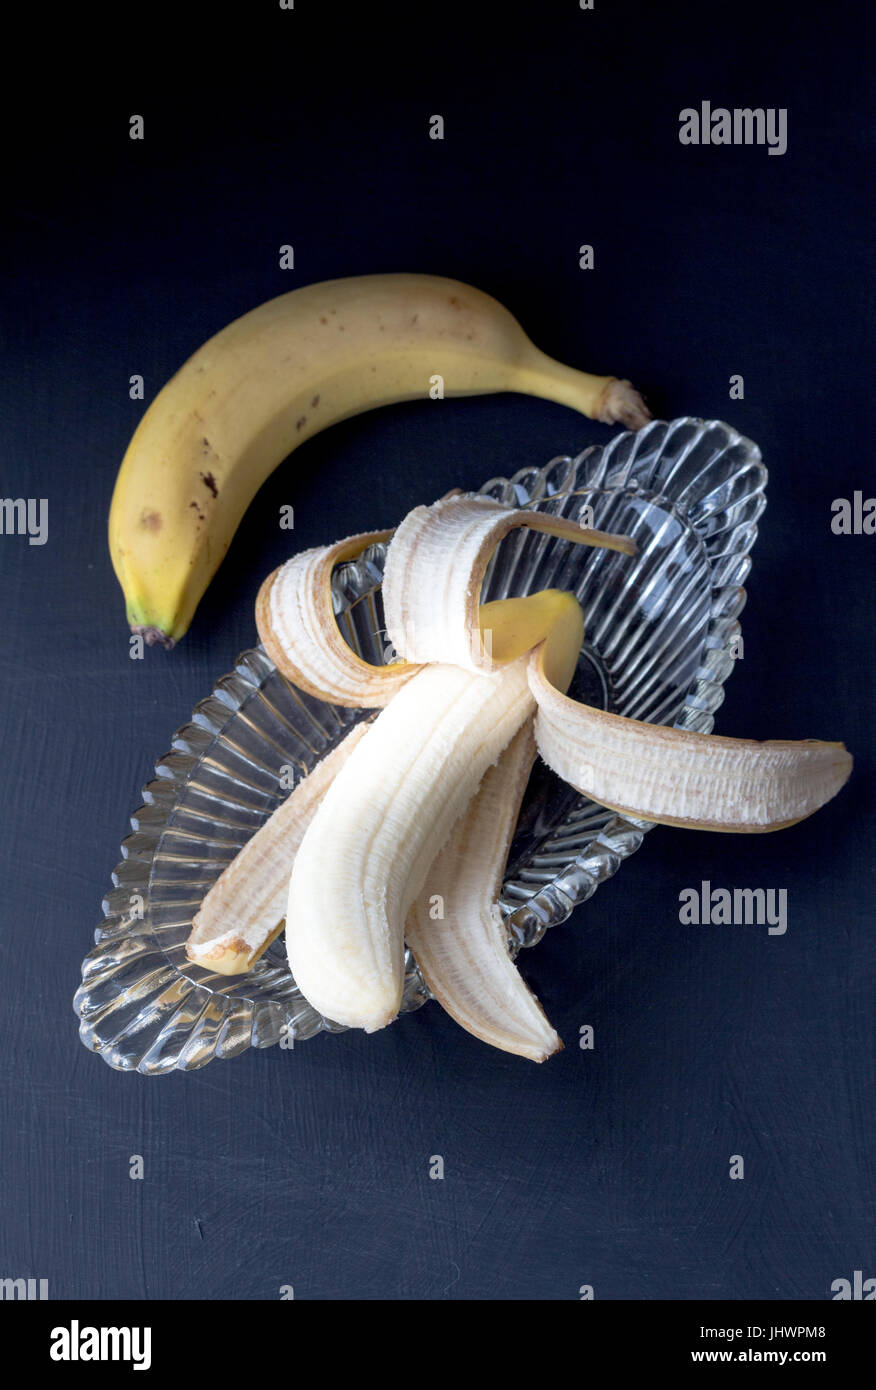 Banana peeled in glass banana split antique bowl with selective focus and one unpeeled on black background - daylight - Stock Image